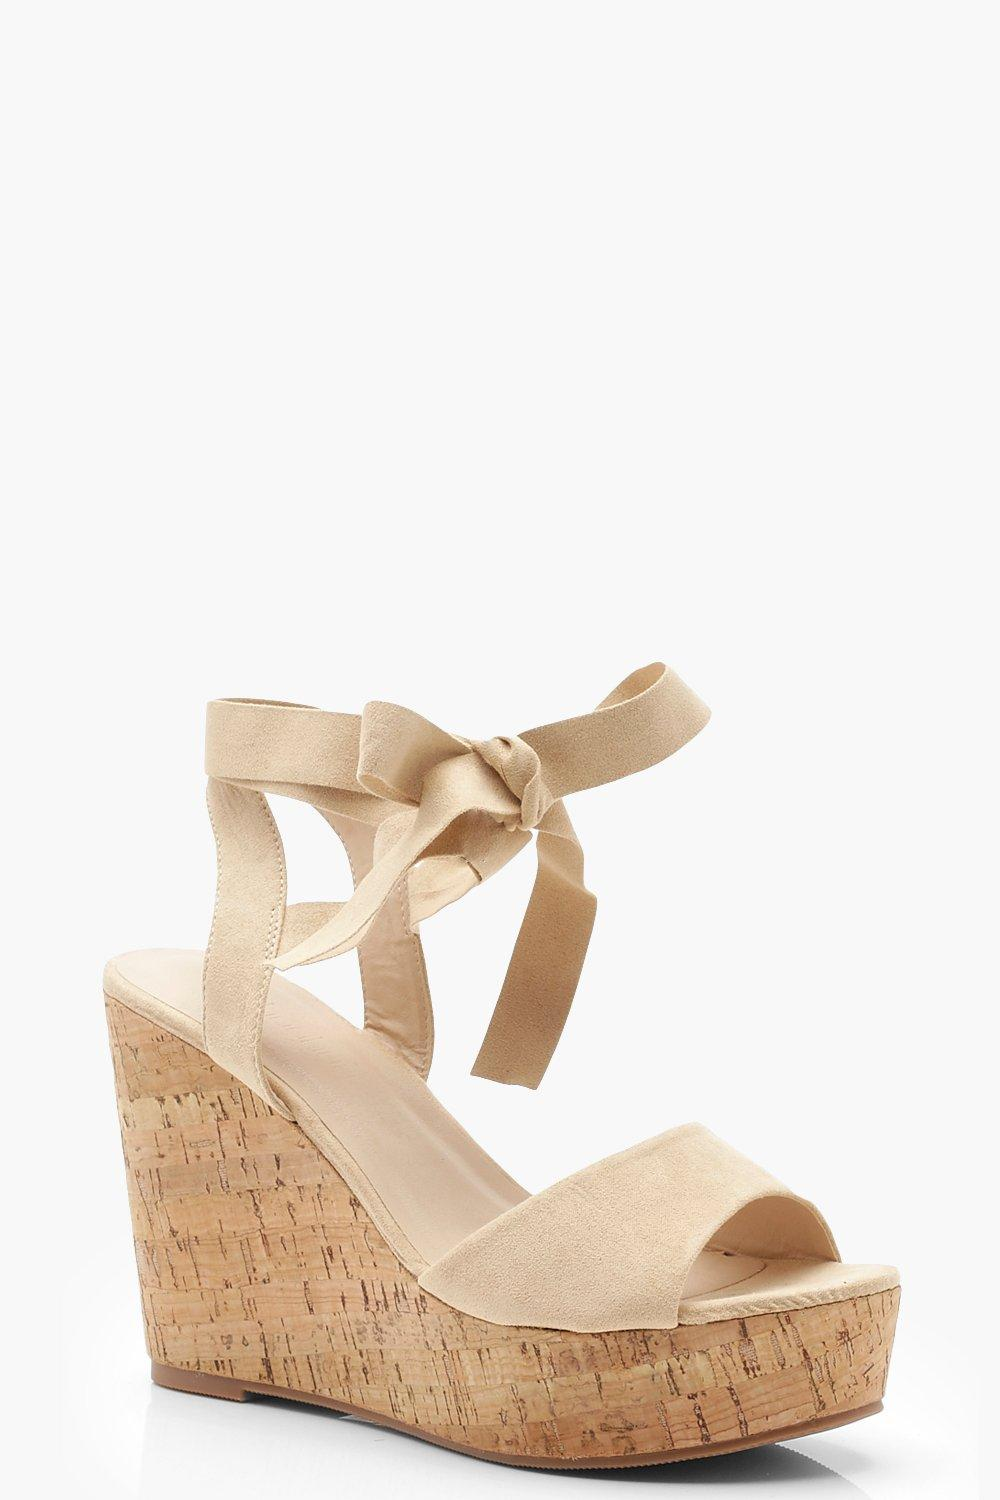 1272c1d46c0d Womens Nude Peeptoe Wrap Strap Cork Wedges. Hover to zoom